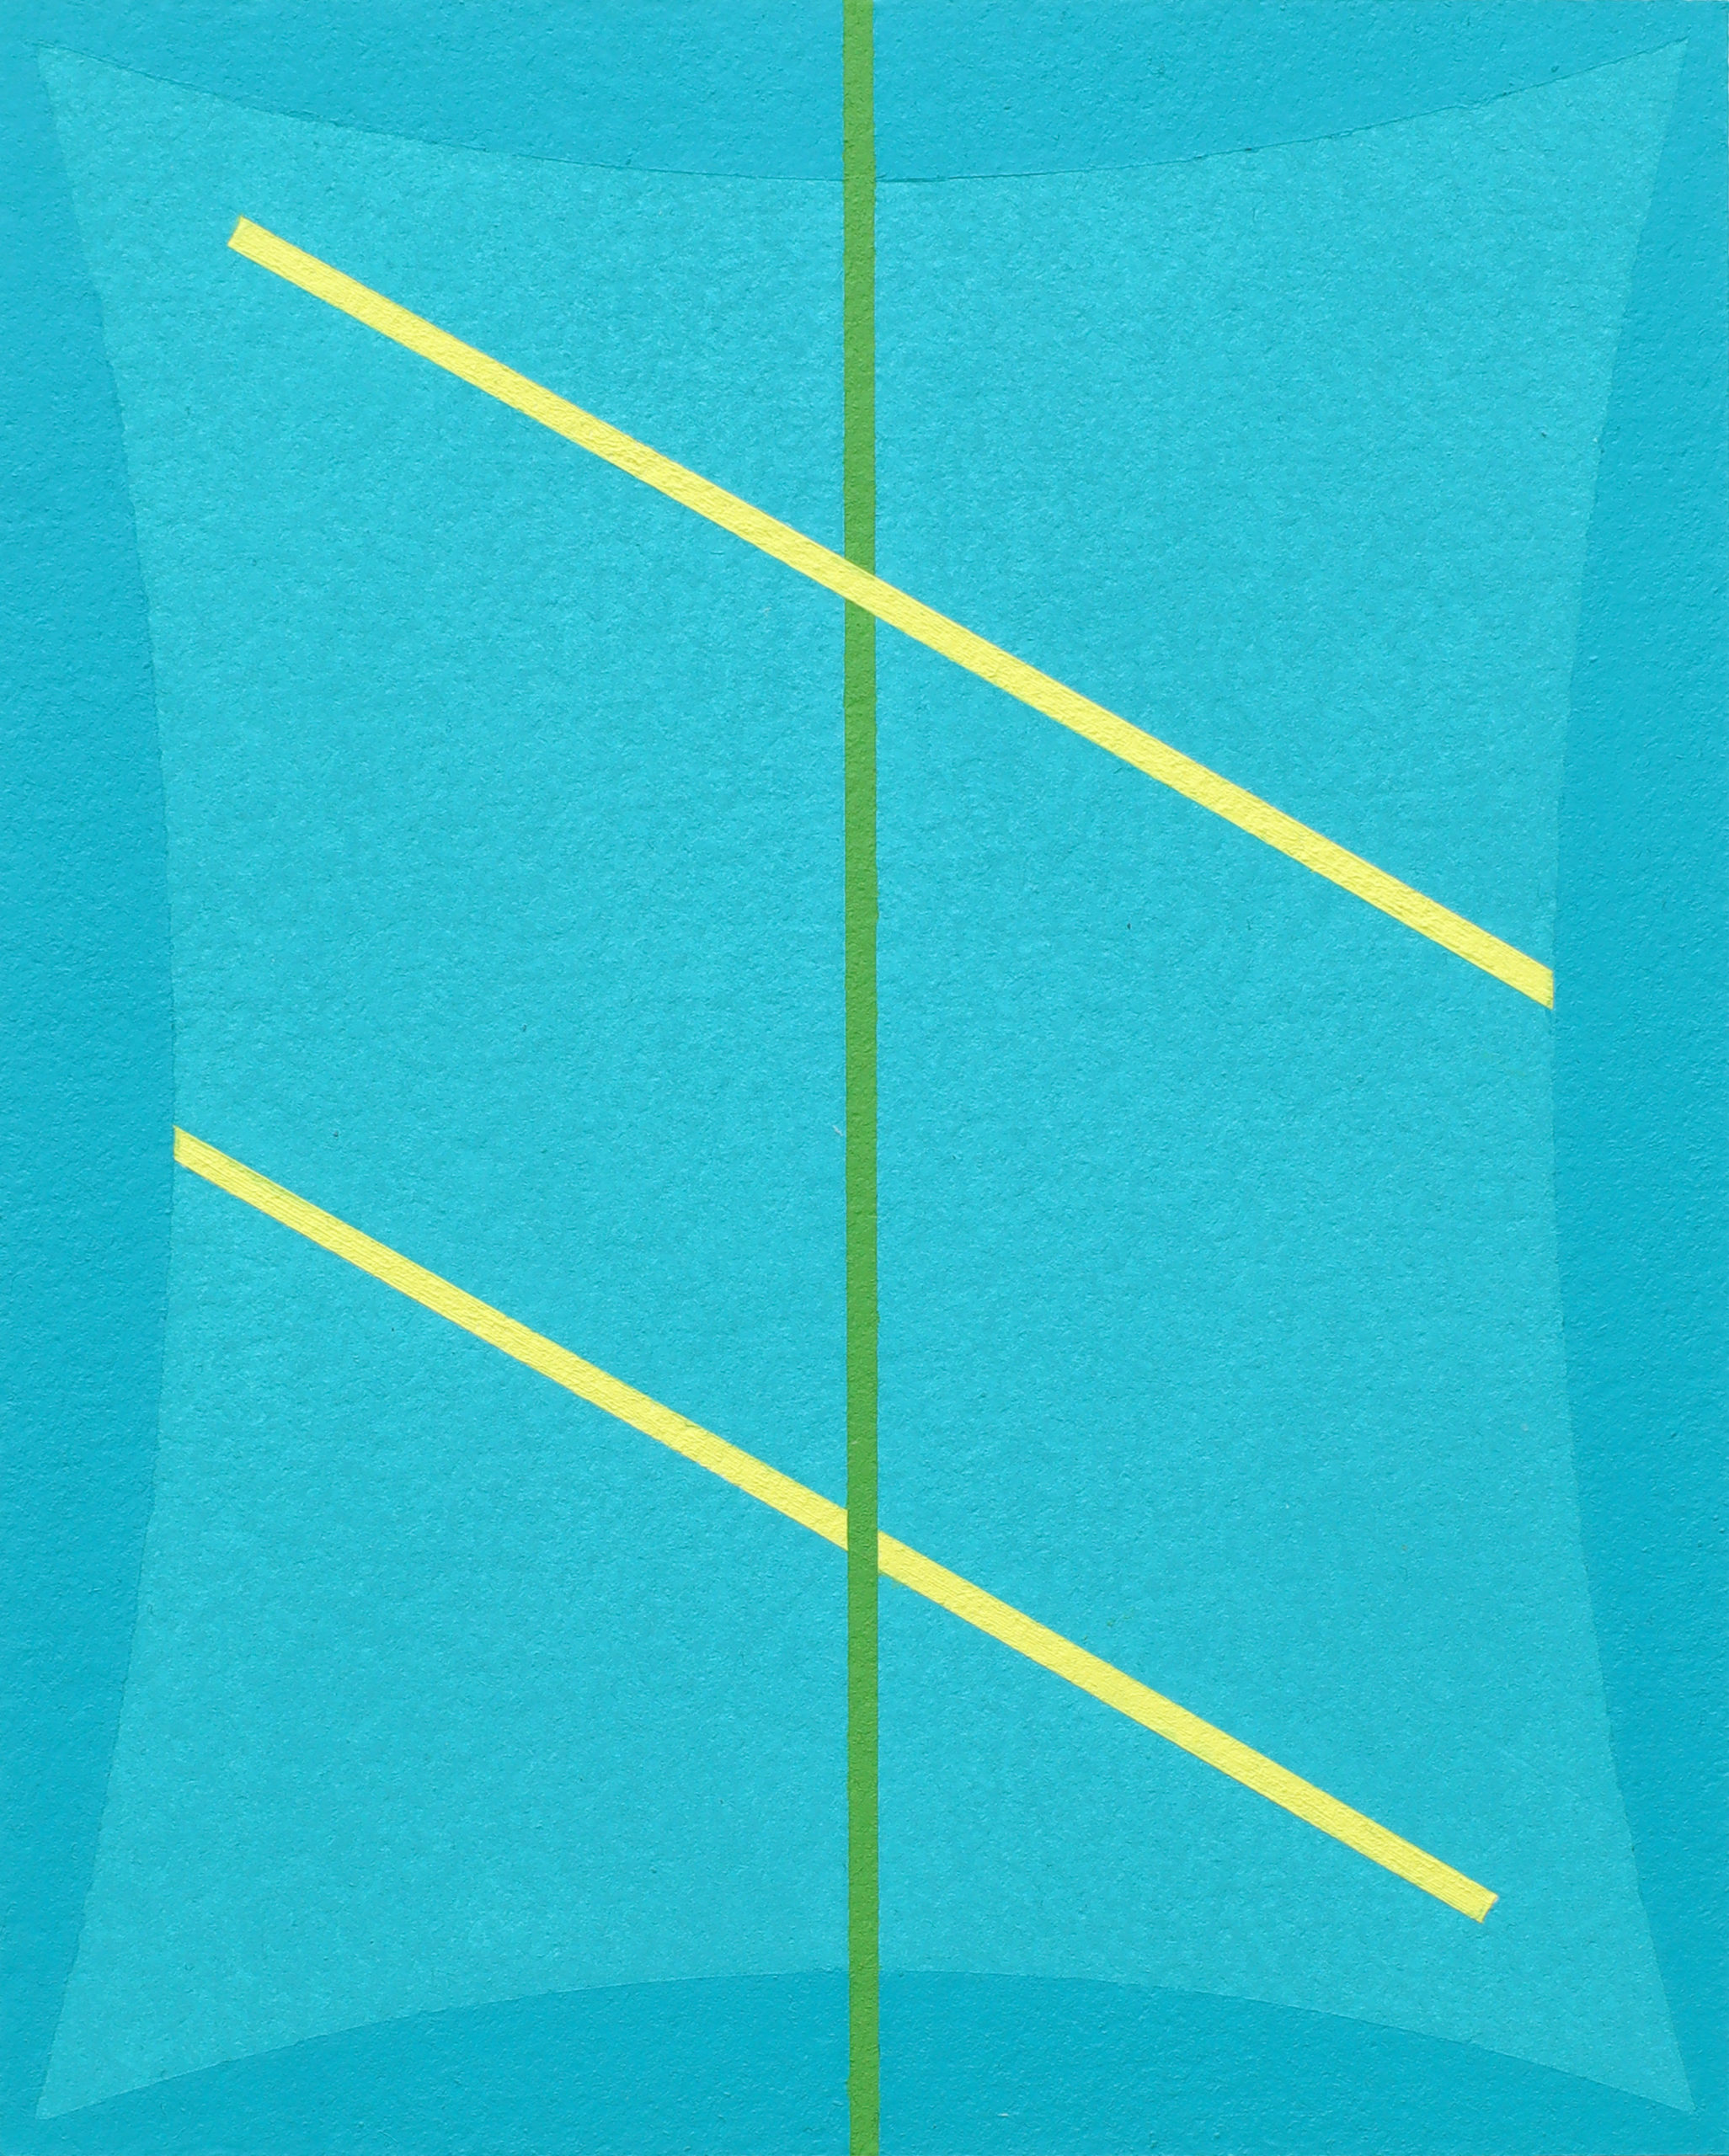 Untitled (Two Blues Yellow and Green)